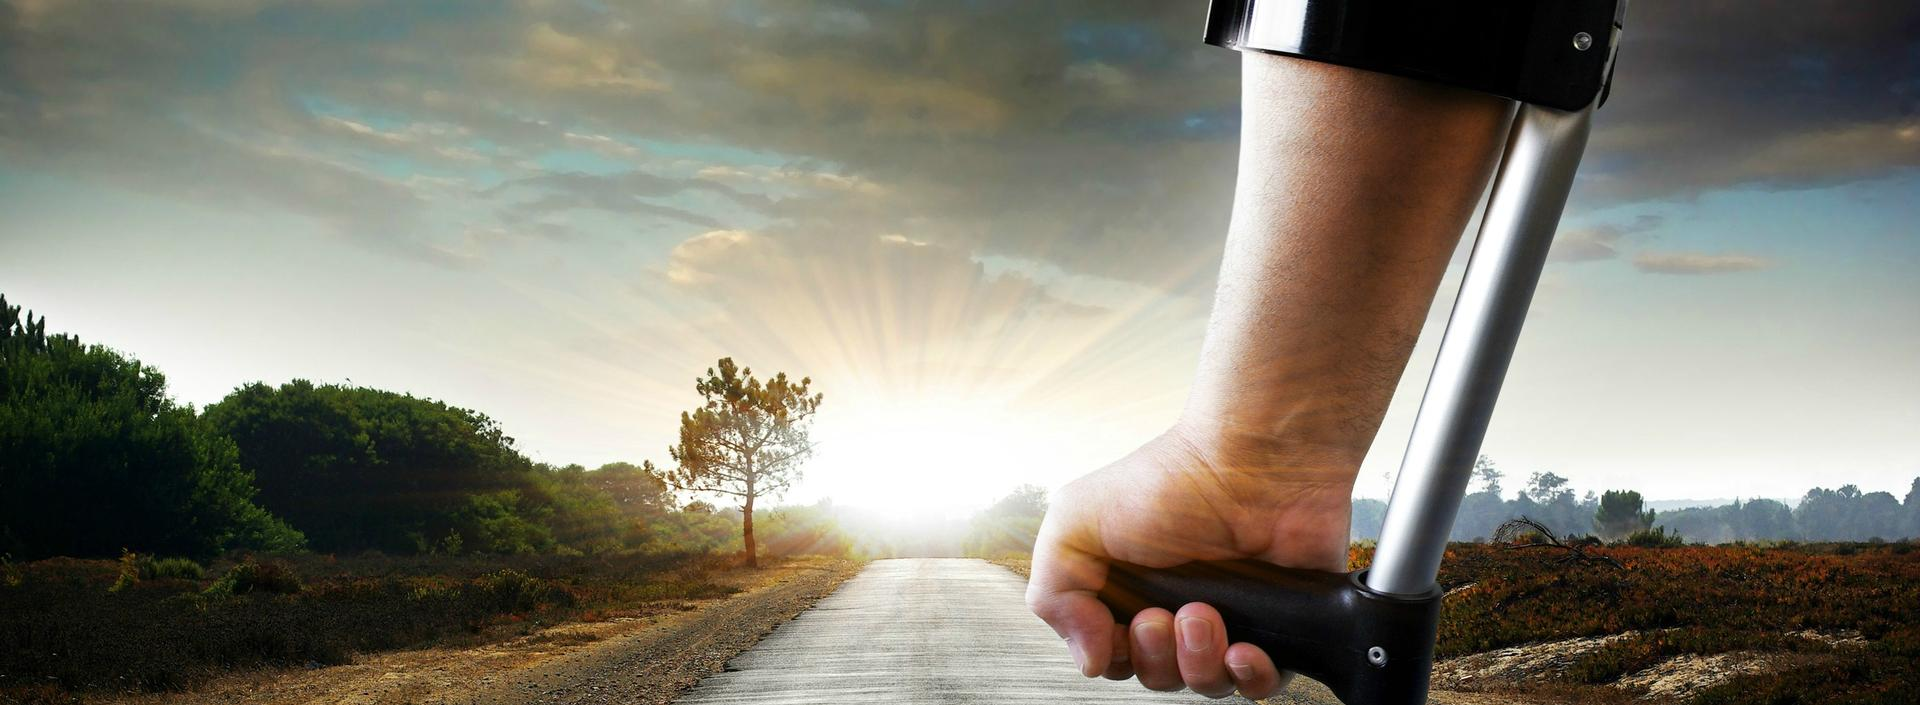 Forefront: Right hand gripping hand rest of Canadian Crutch; Background: country road leading to horizon against setting sun.